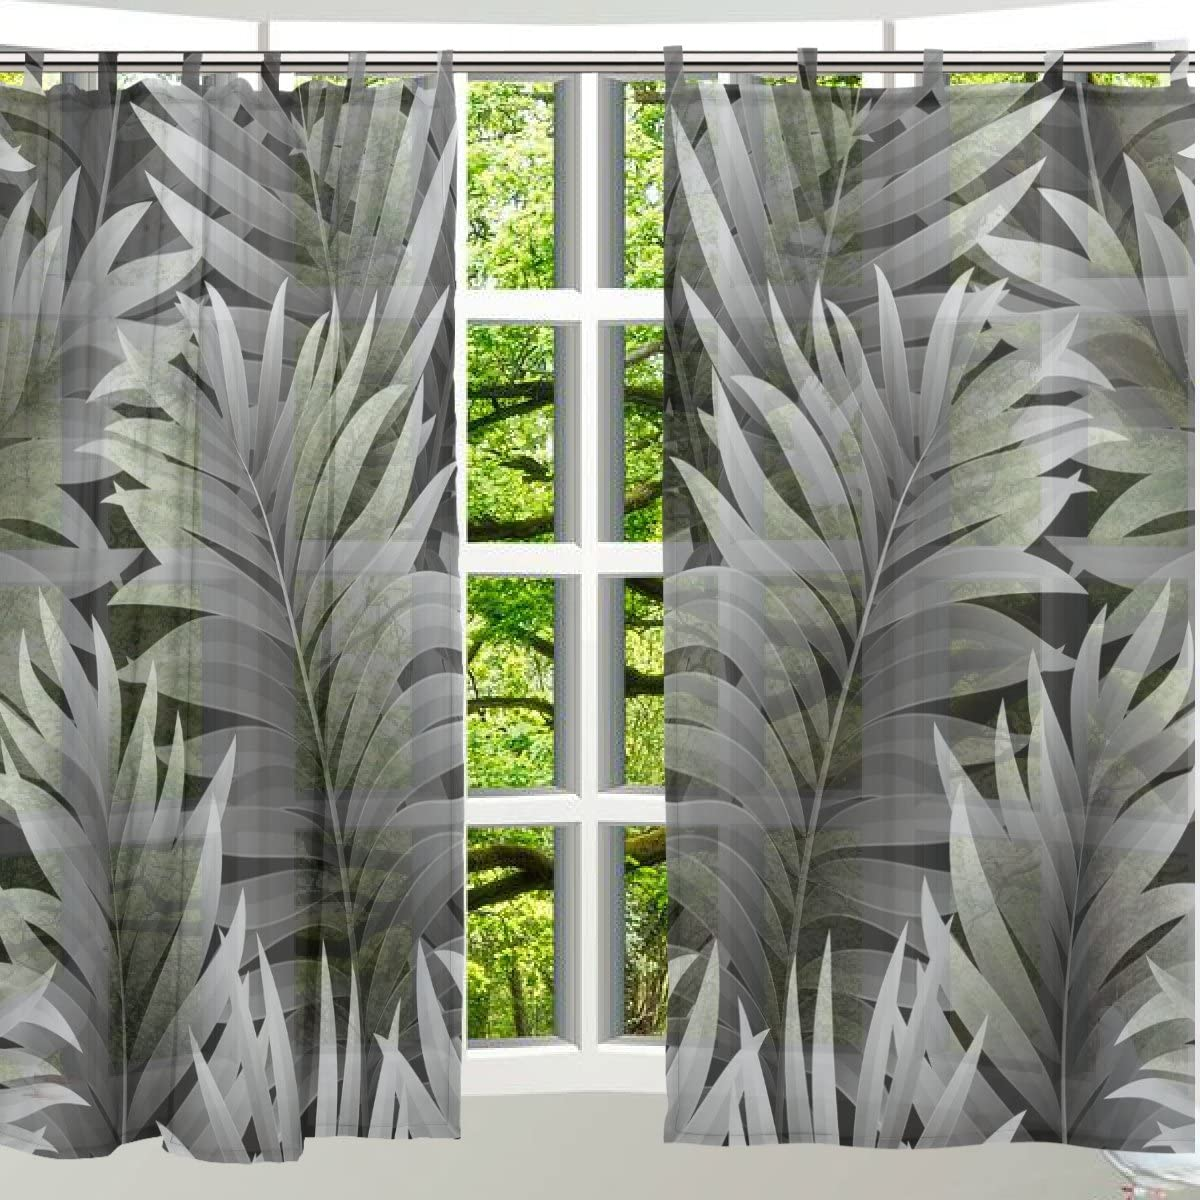 ALAZA 2PCS Window Decoration Sheer Curtain Panels,Tropical Vacation Green Swaying Palms,Window Gauze Curtains Living Room Bedroom Kid s Office Window Tie Top Curtain 55×78 inch Two Panels Set